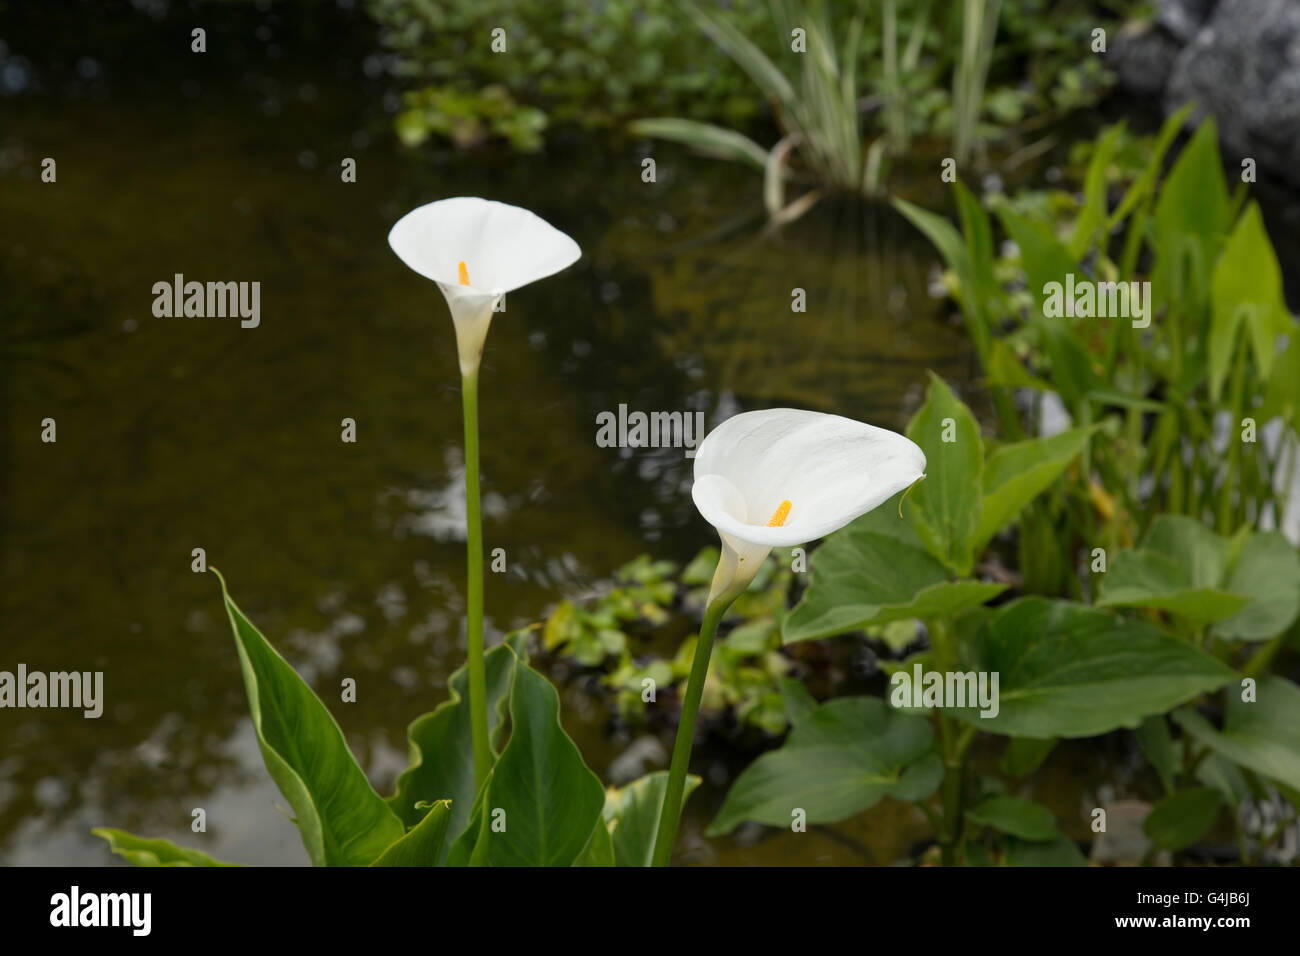 Arum Lily Growing As A Marginal Water Plant In A Garden Pond Stock